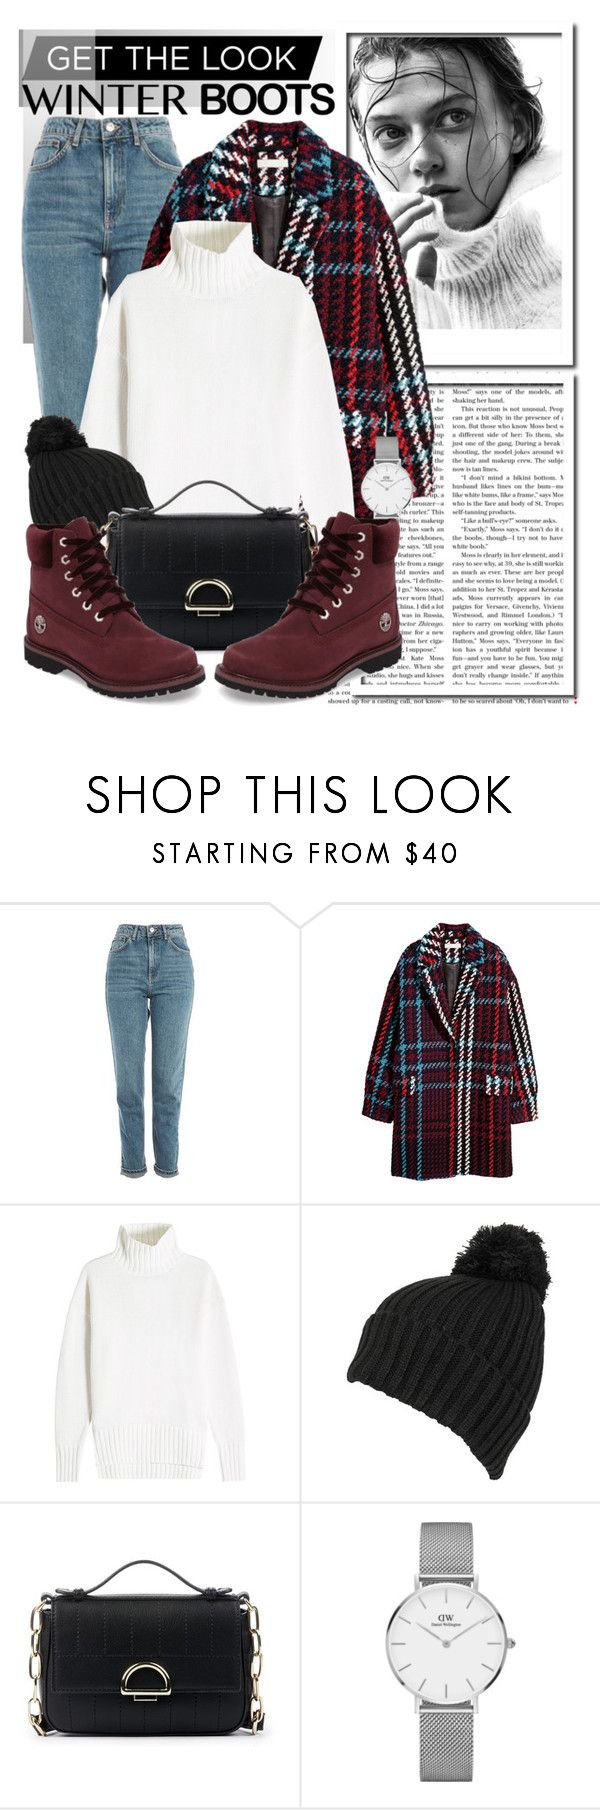 """Get The Look: Winter Boots..."" by glamorous09 ❤ liked on Polyvore featuring Topshop, Joseph, Wilsons Leather, Sole Society, Daniel Wellington and Timberland"